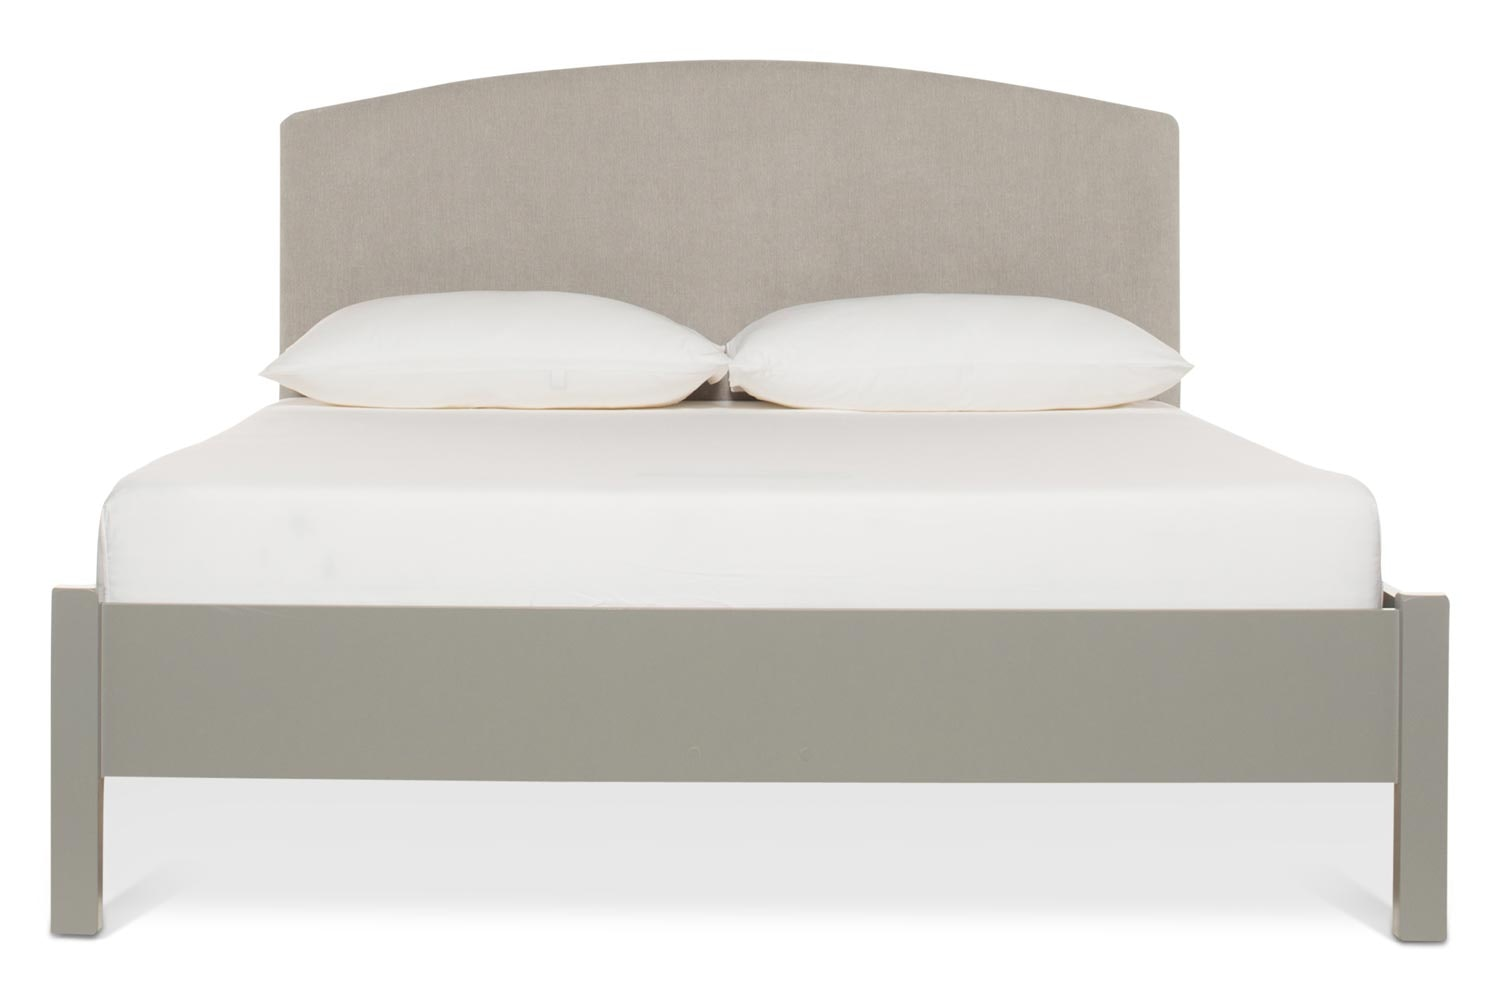 Emily Loft Grey Bed Frame | 5FT | Lennon Headboard